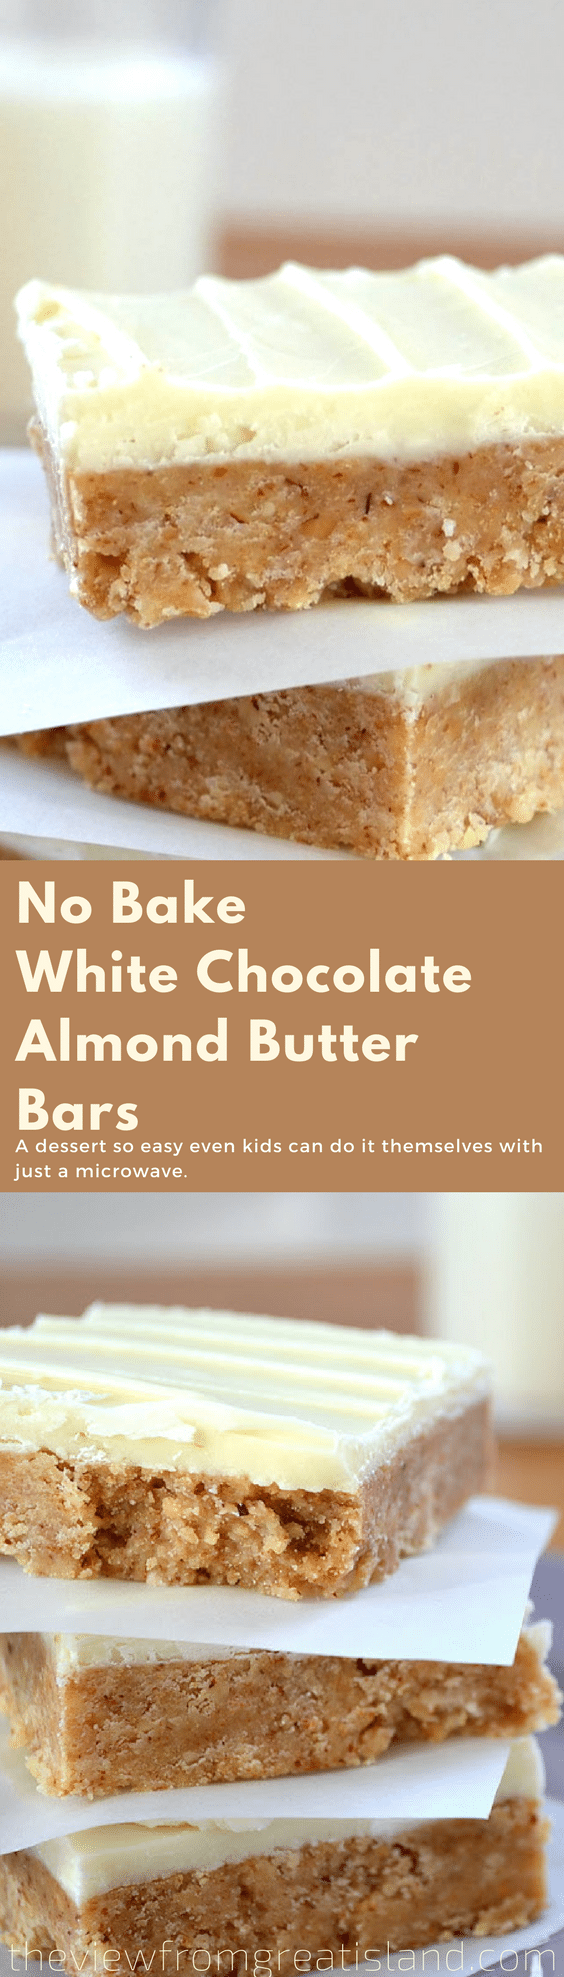 No-Bake White Chocolate Almond Butter Squares ~ a variation on the popular peanut butter and chocolate bars, this easy no bake dessert is a family favorite. #nobake #dessert #recipe #peanutbutterbars #almondbutter #almondbutterbars #whitechocolate #easydessert